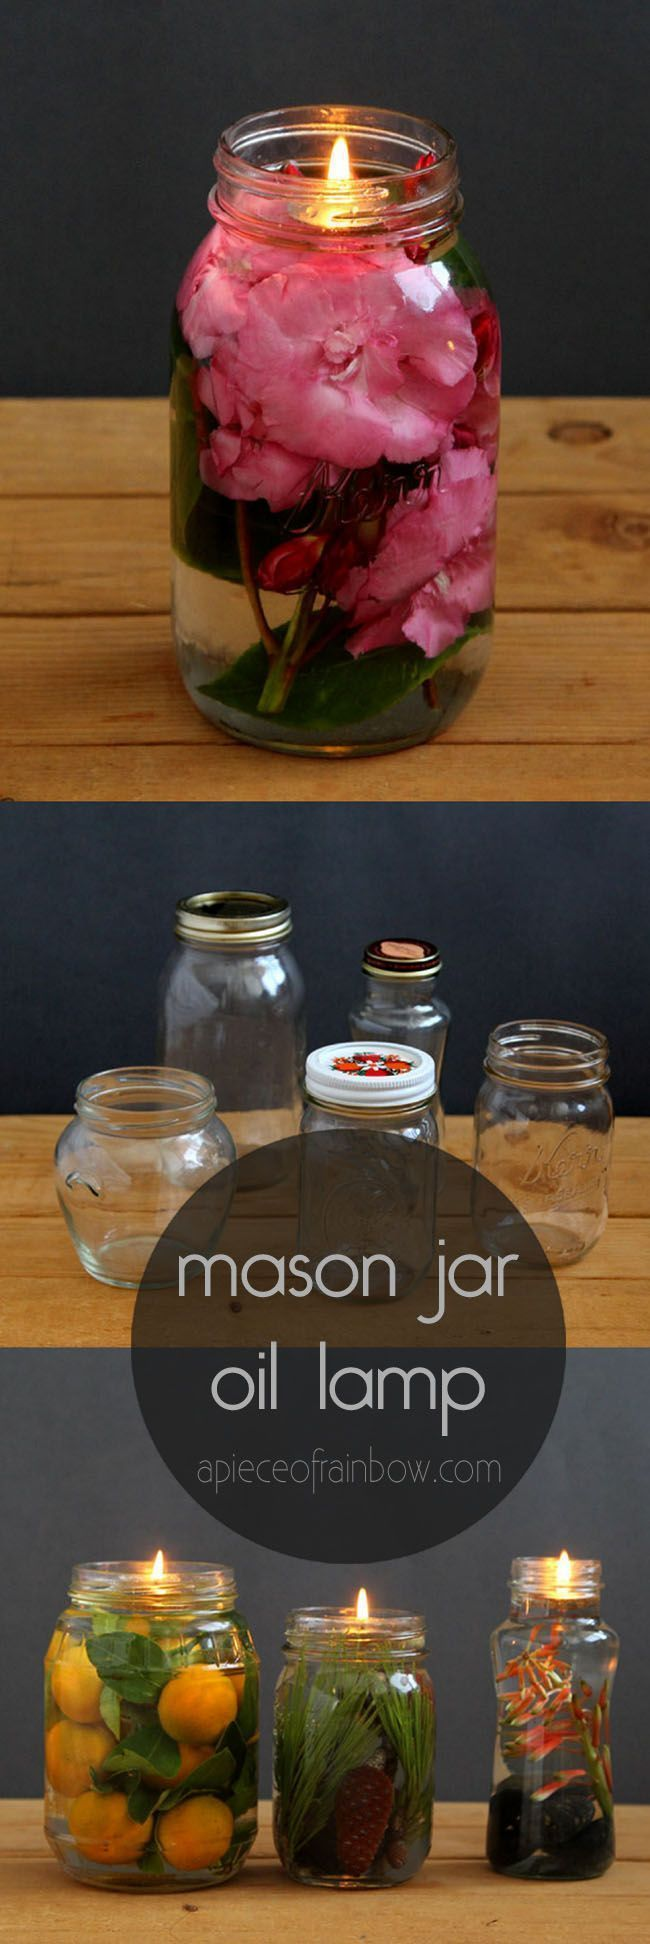 Make gorgeous oil lamp from mason jars and glass bottles. Safer than candles, it takes only 2 minutes to make using vegetable oils and water! best #candle #making